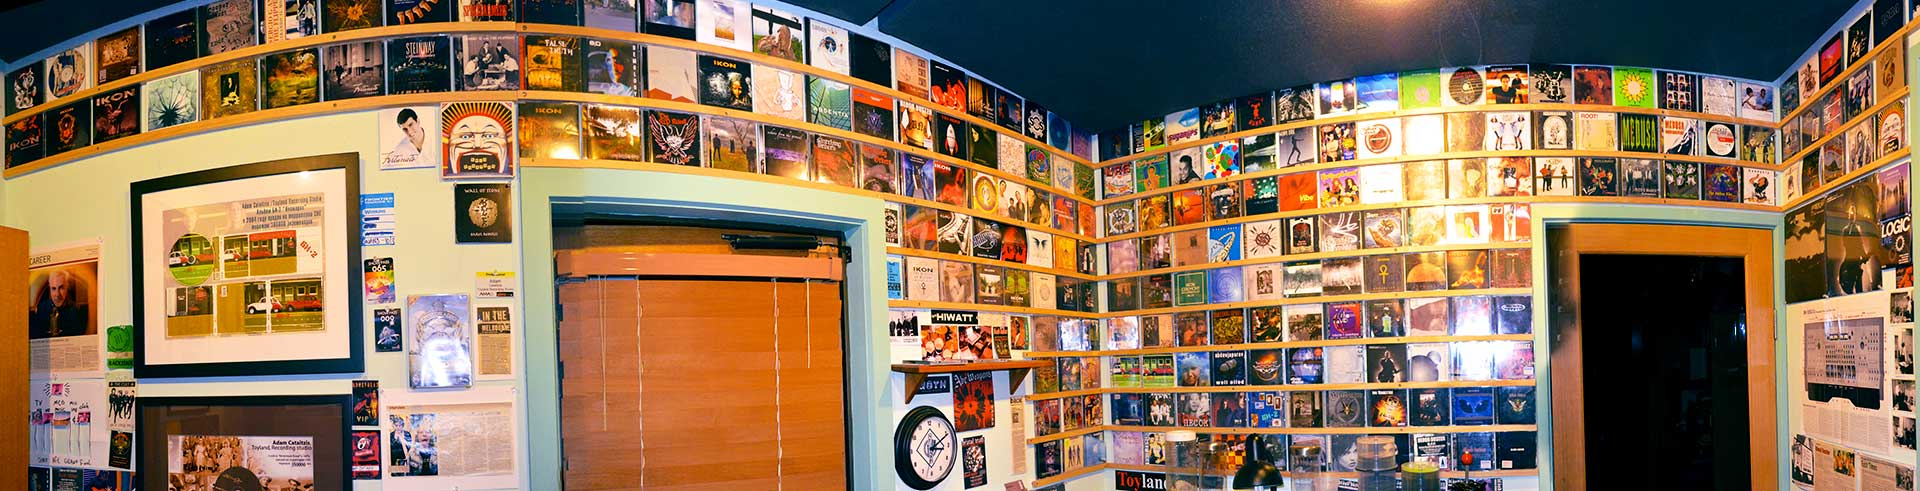 Toyland Recording Studio Melbourne CD room